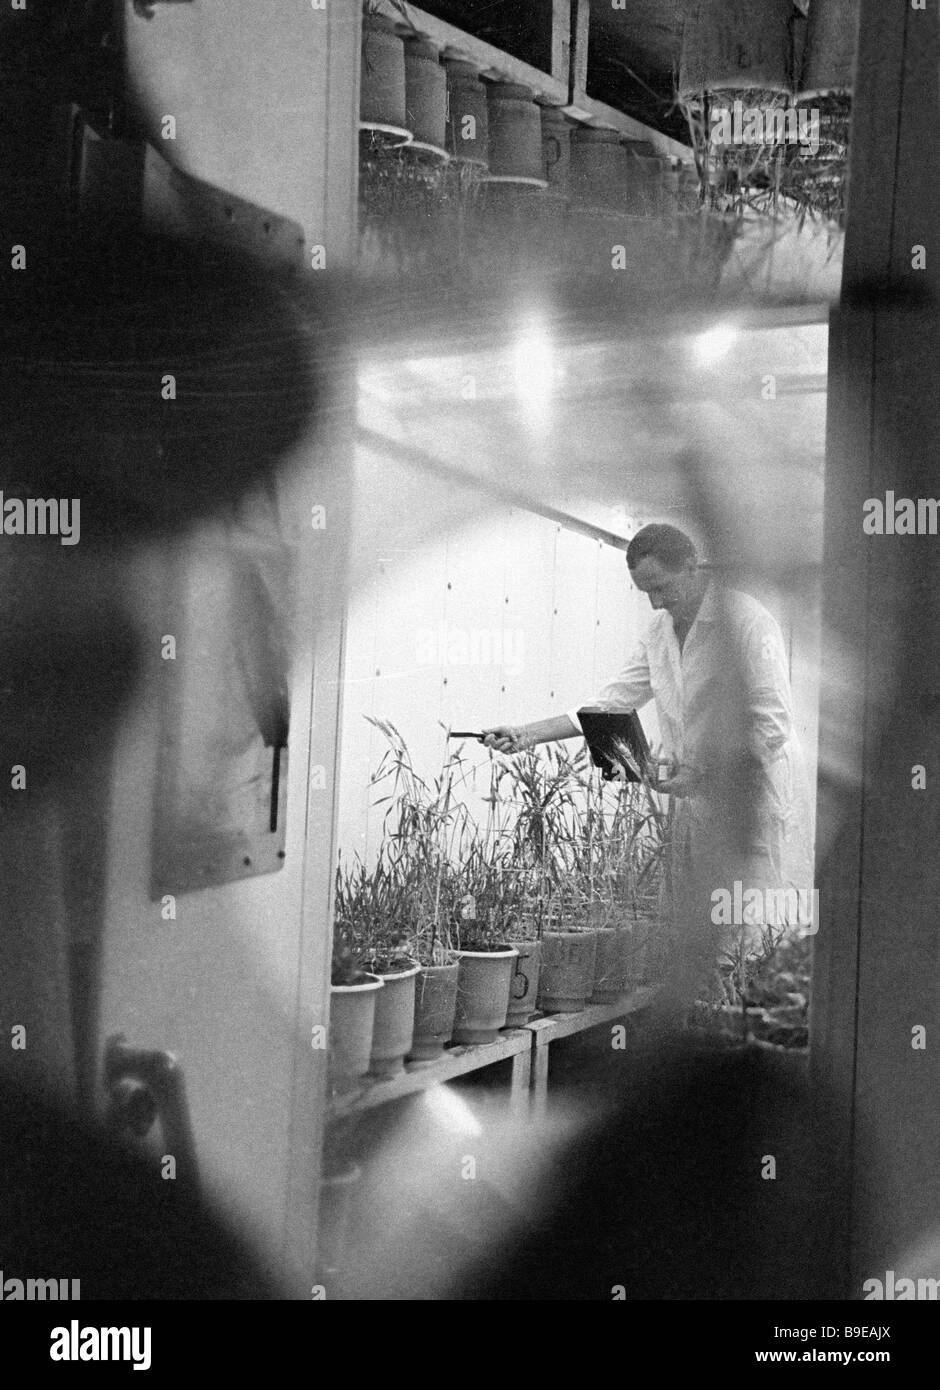 Associate of the Mironovsky research wheat breeding institute at work - Stock Image